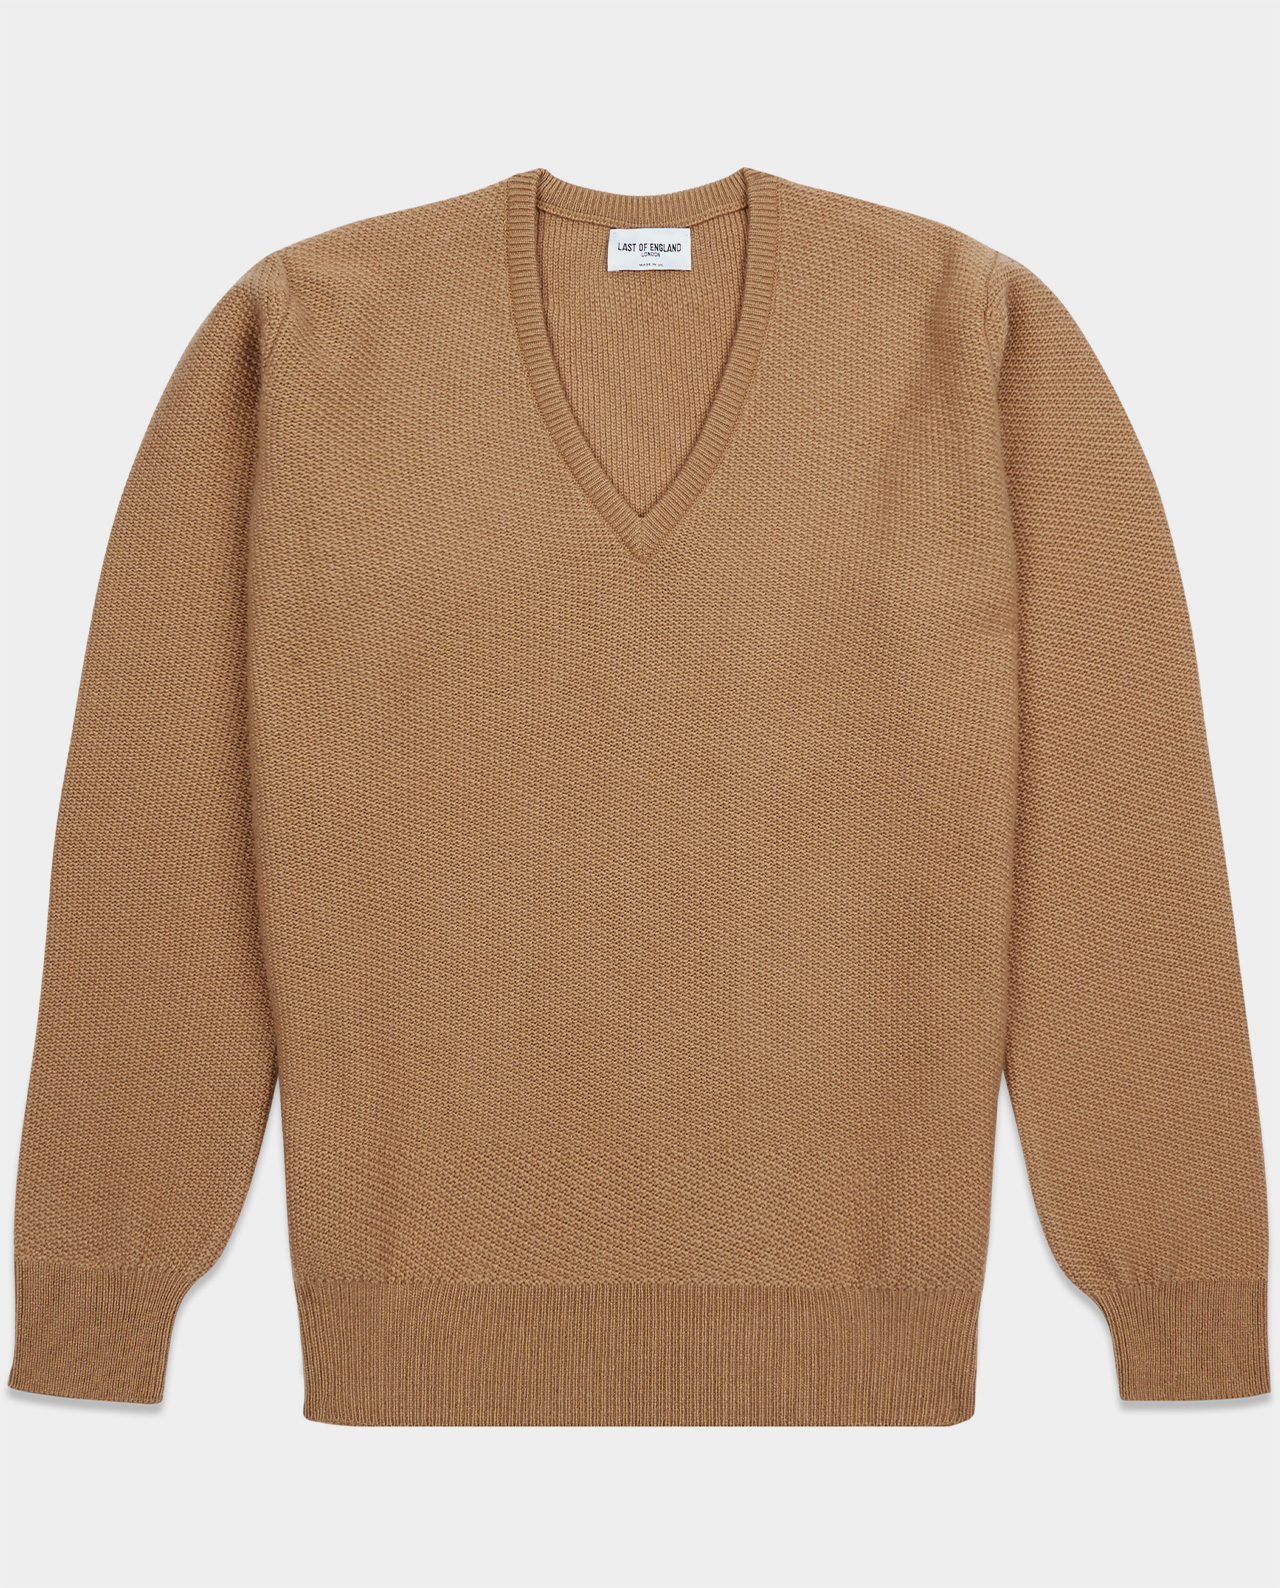 Last of England Honeycomb Stitch Camel Jumper